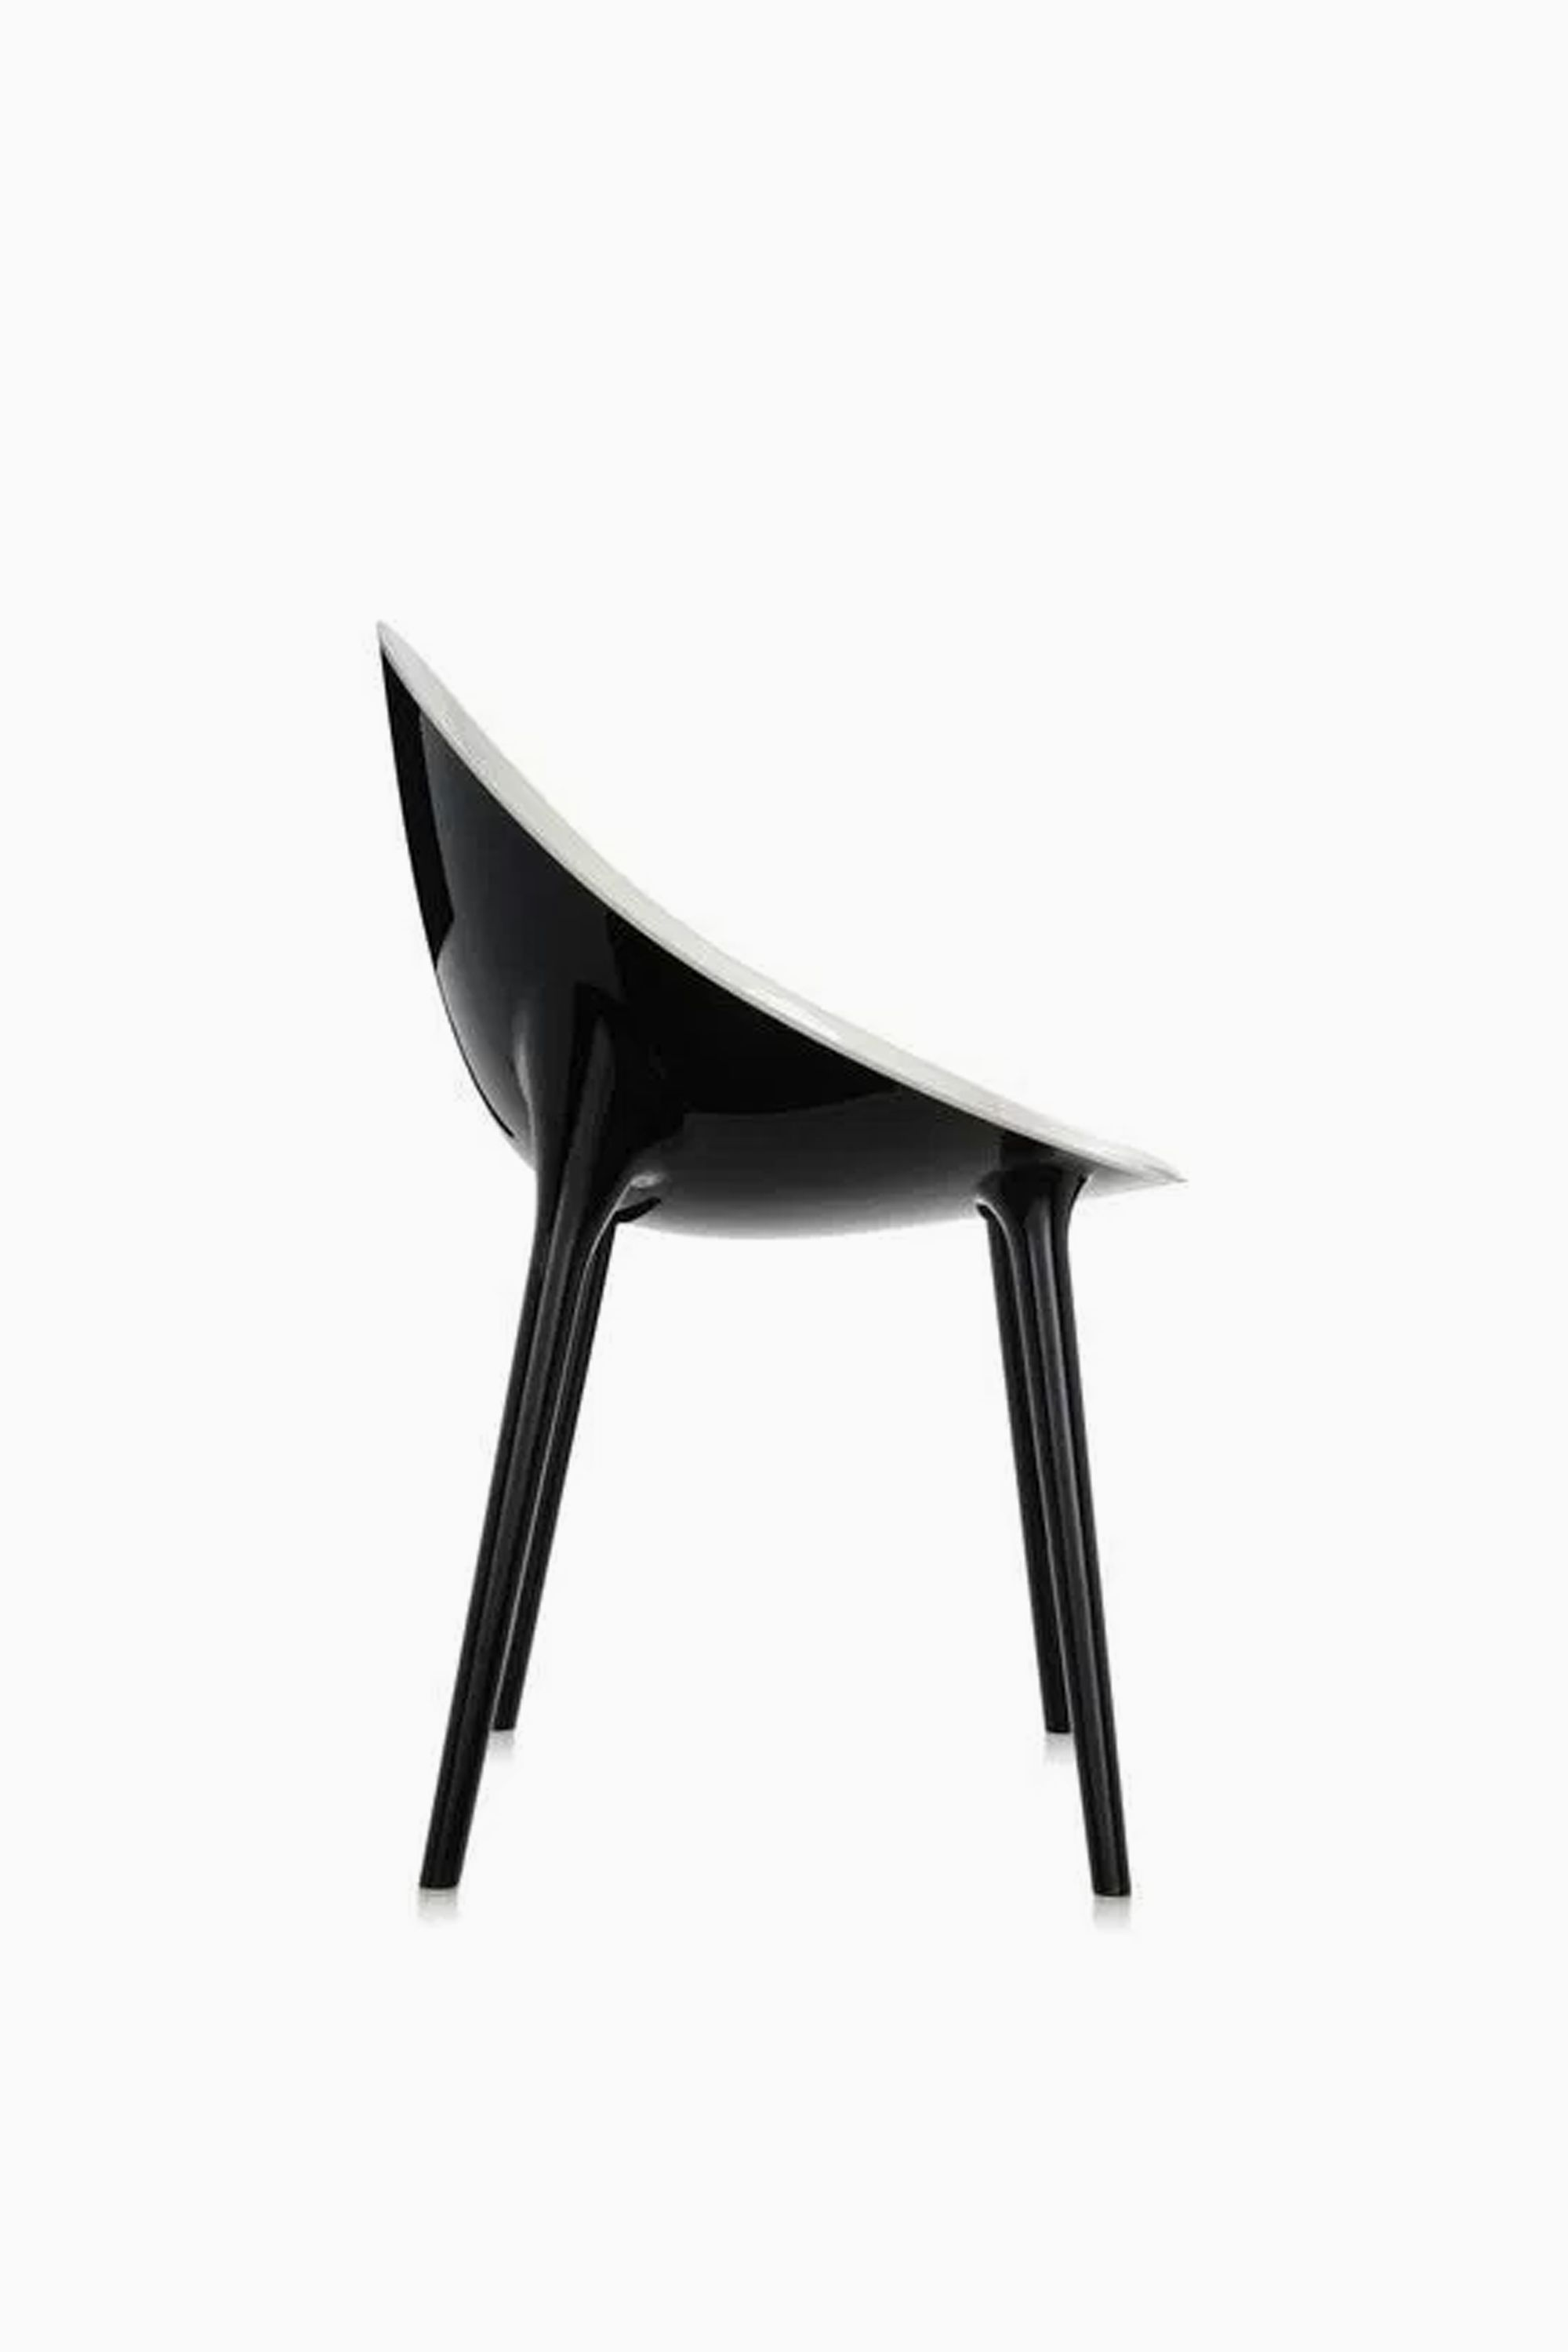 Ambient Direct impossible armchair by philippe starck for kartell from